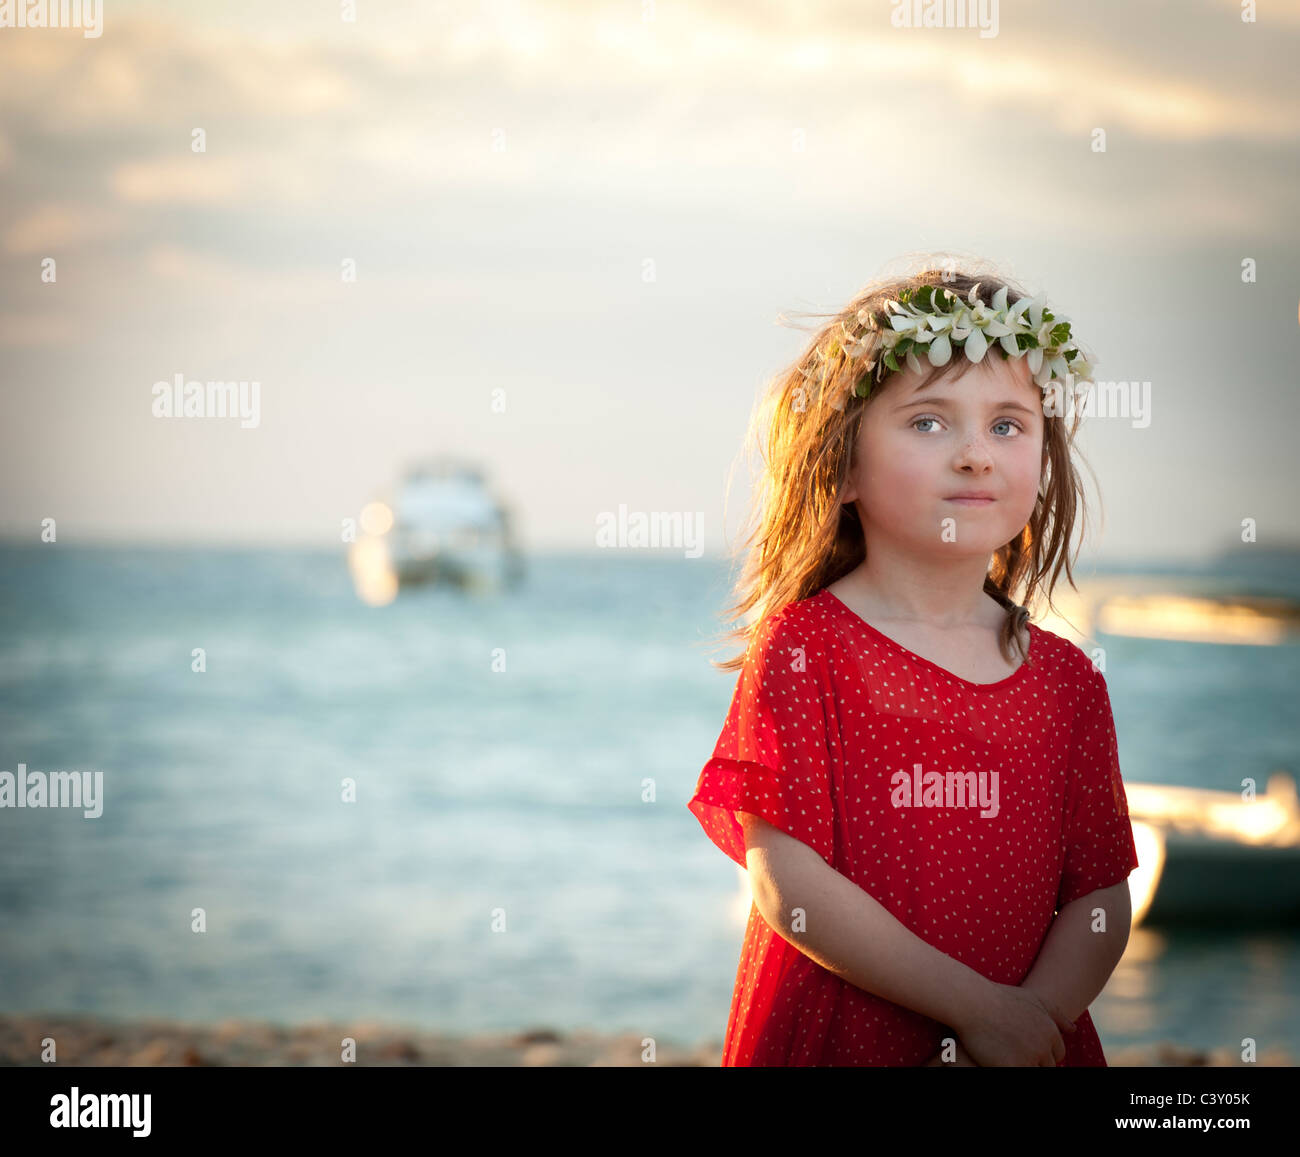 little girl with flowers in her hair and red dress innocently looking off into distance - Stock Image